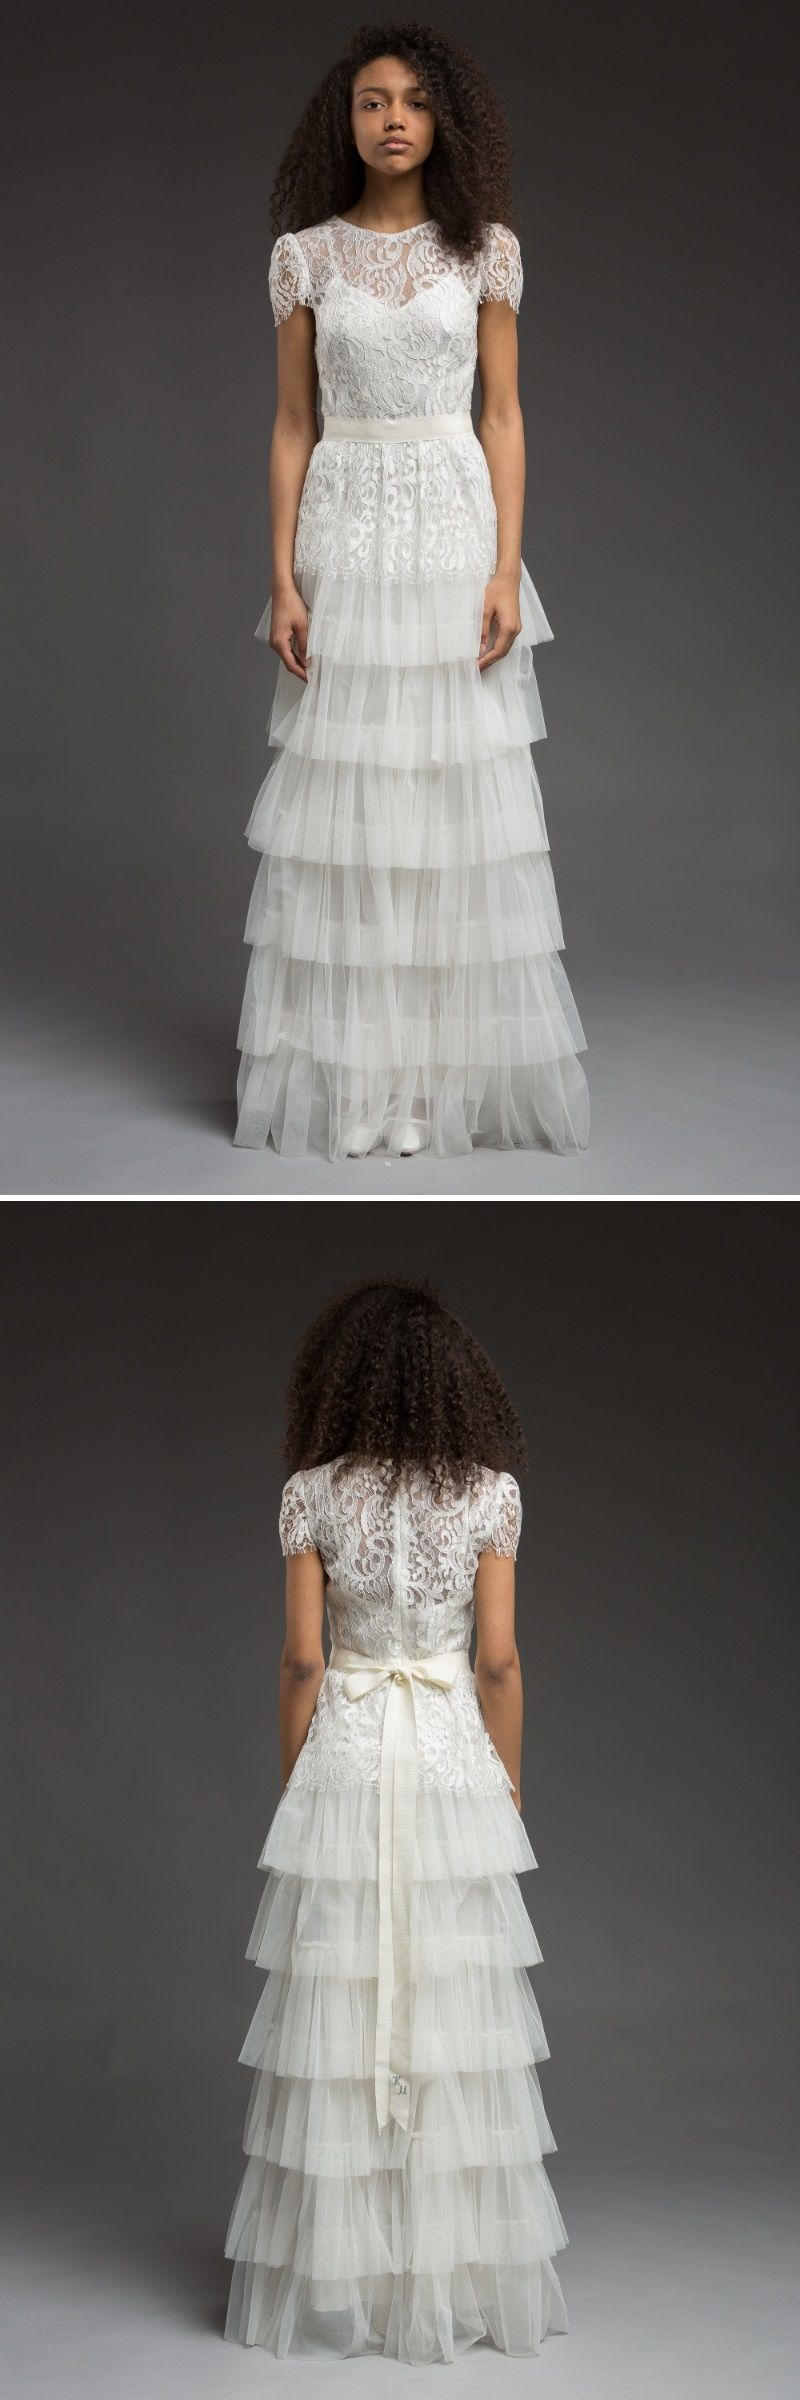 Tulle tiered vintage inspired wedding dress wedding dress